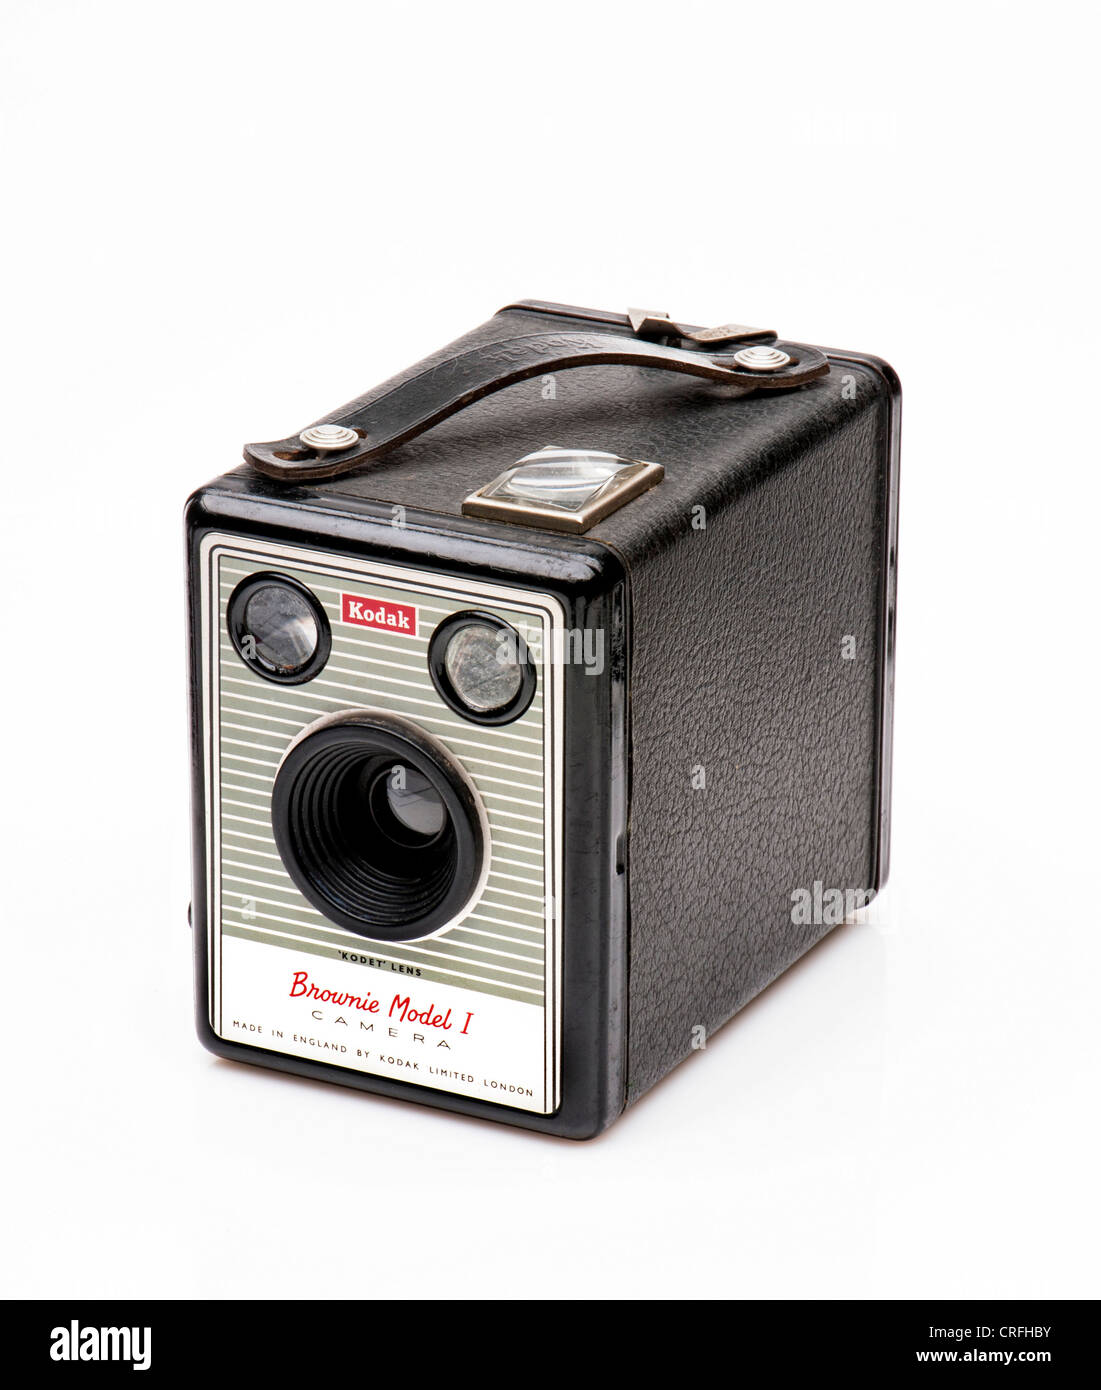 Boîte de Kodak Brownie Model 1 vintage camera Photo Stock